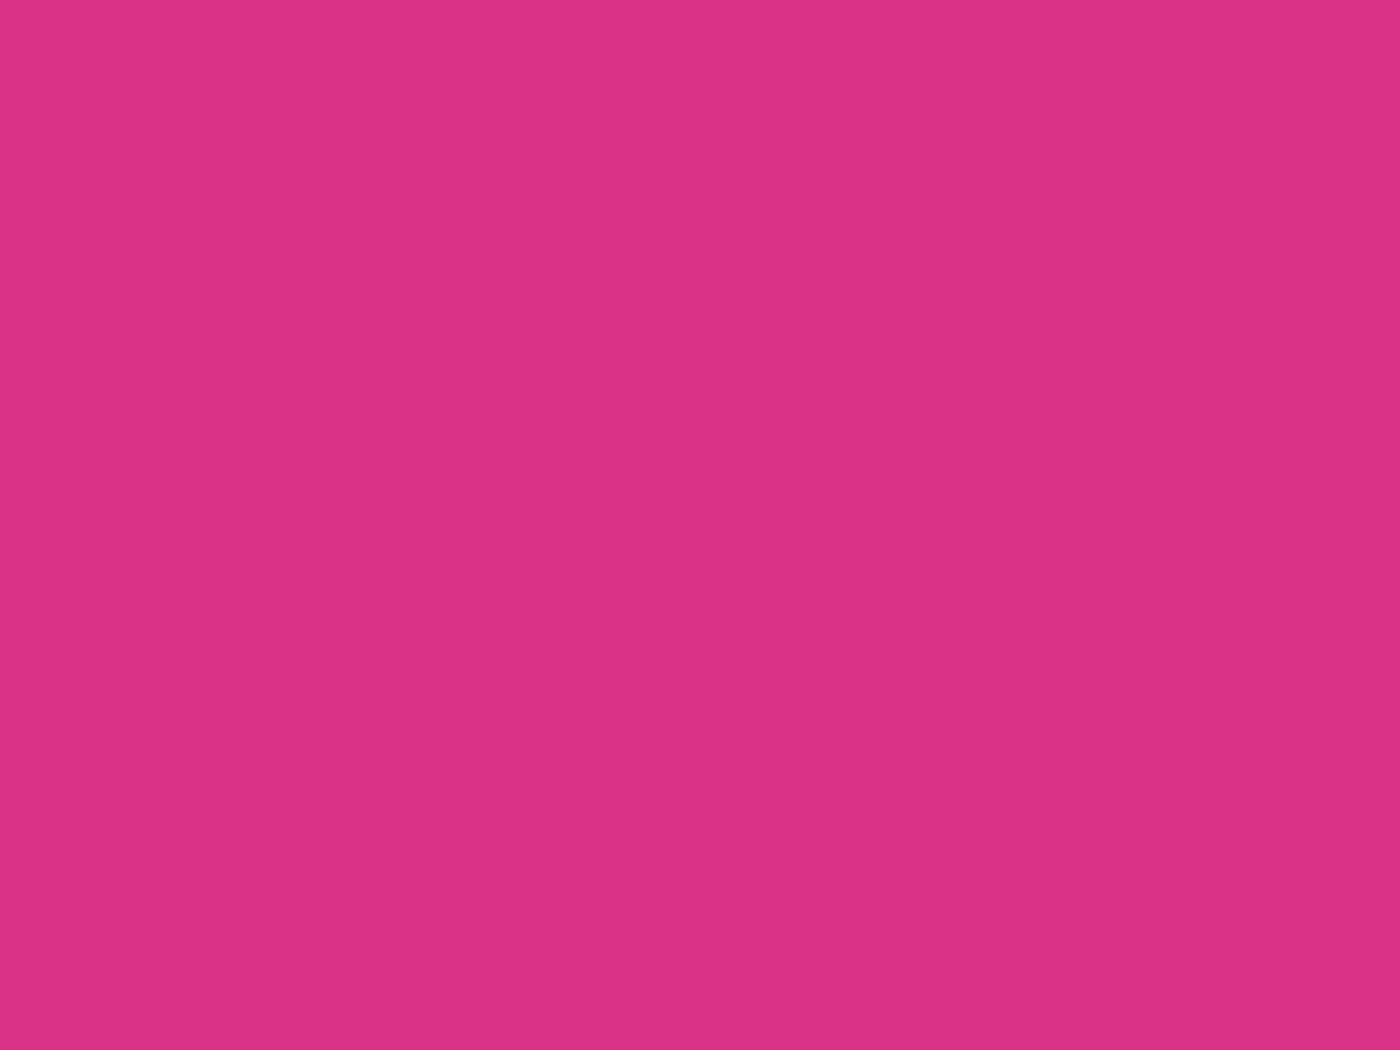 1400x1050 Deep Cerise Solid Color Background